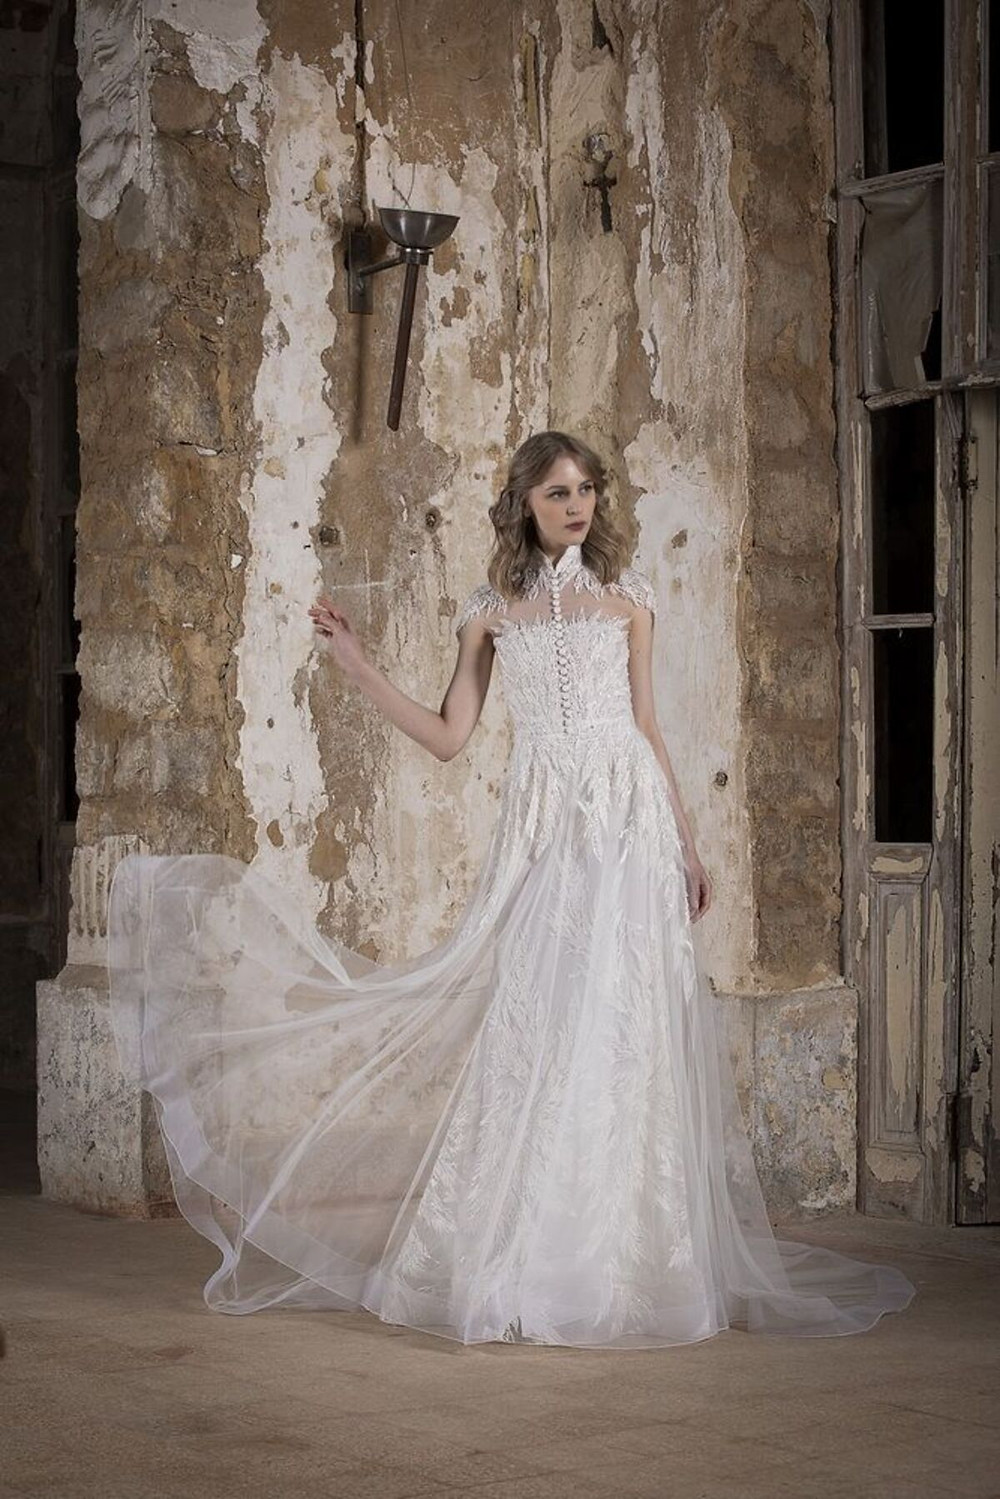 A collared A-line wedding gown, enriched with button detailing and delicate beaded embroidery